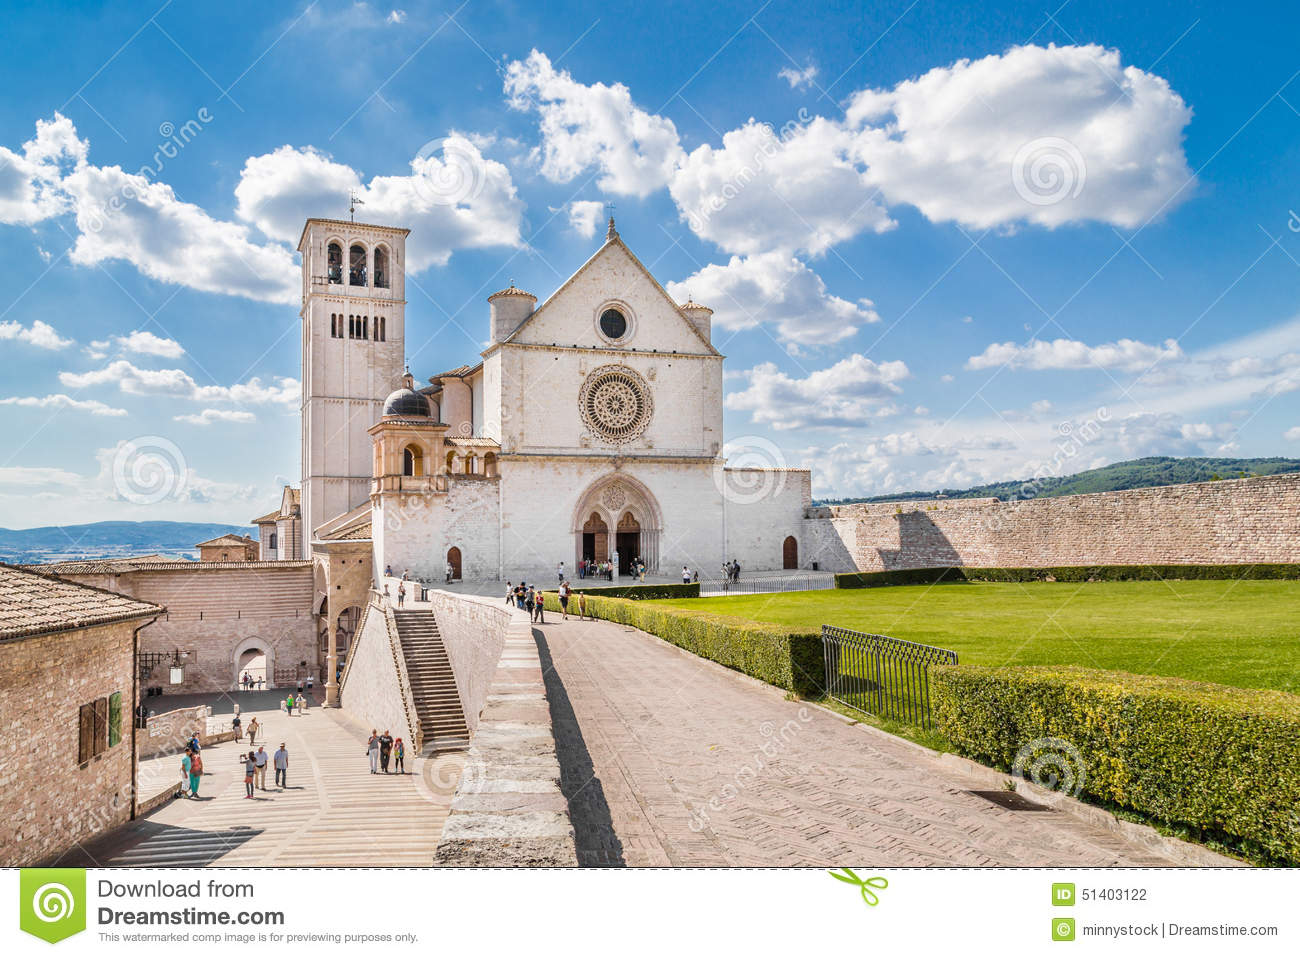 Basilica of St. Francis of Assisi in Assisi, Umbria, Italy